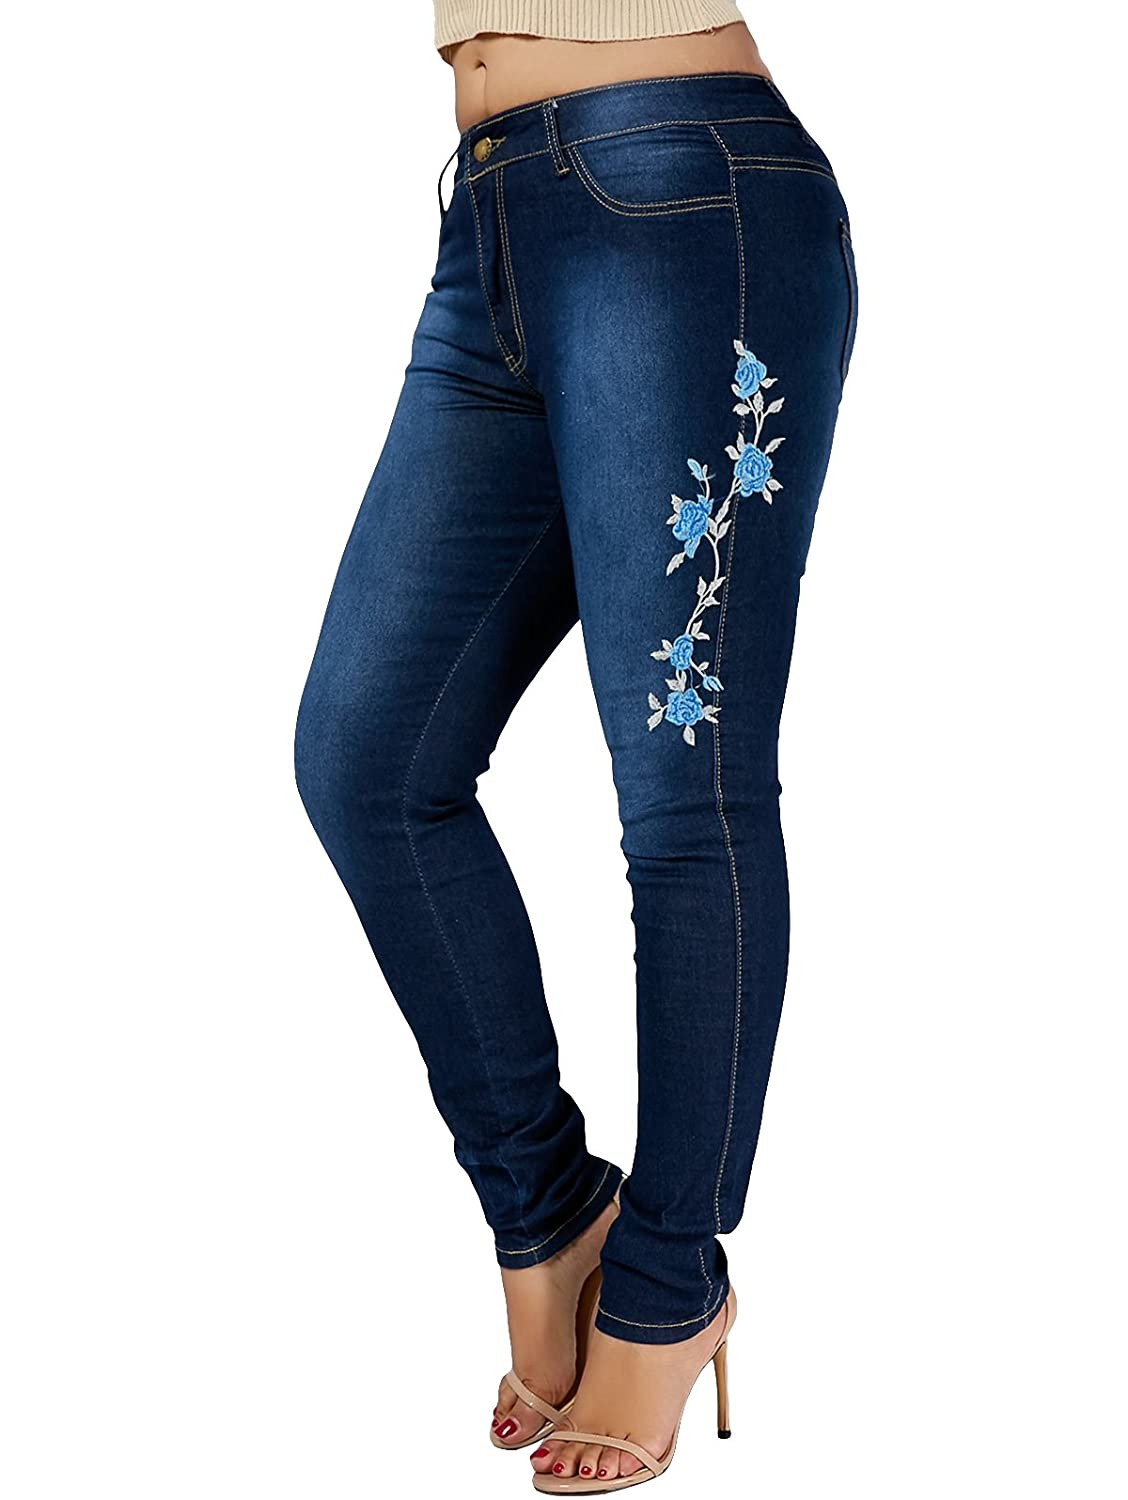 d624277218 Material: Polyester+Demin, stretch and comfort. Embroidered roses design  jeans let you look more energetic. Casual denim jeans that pair well with  fitted, ...